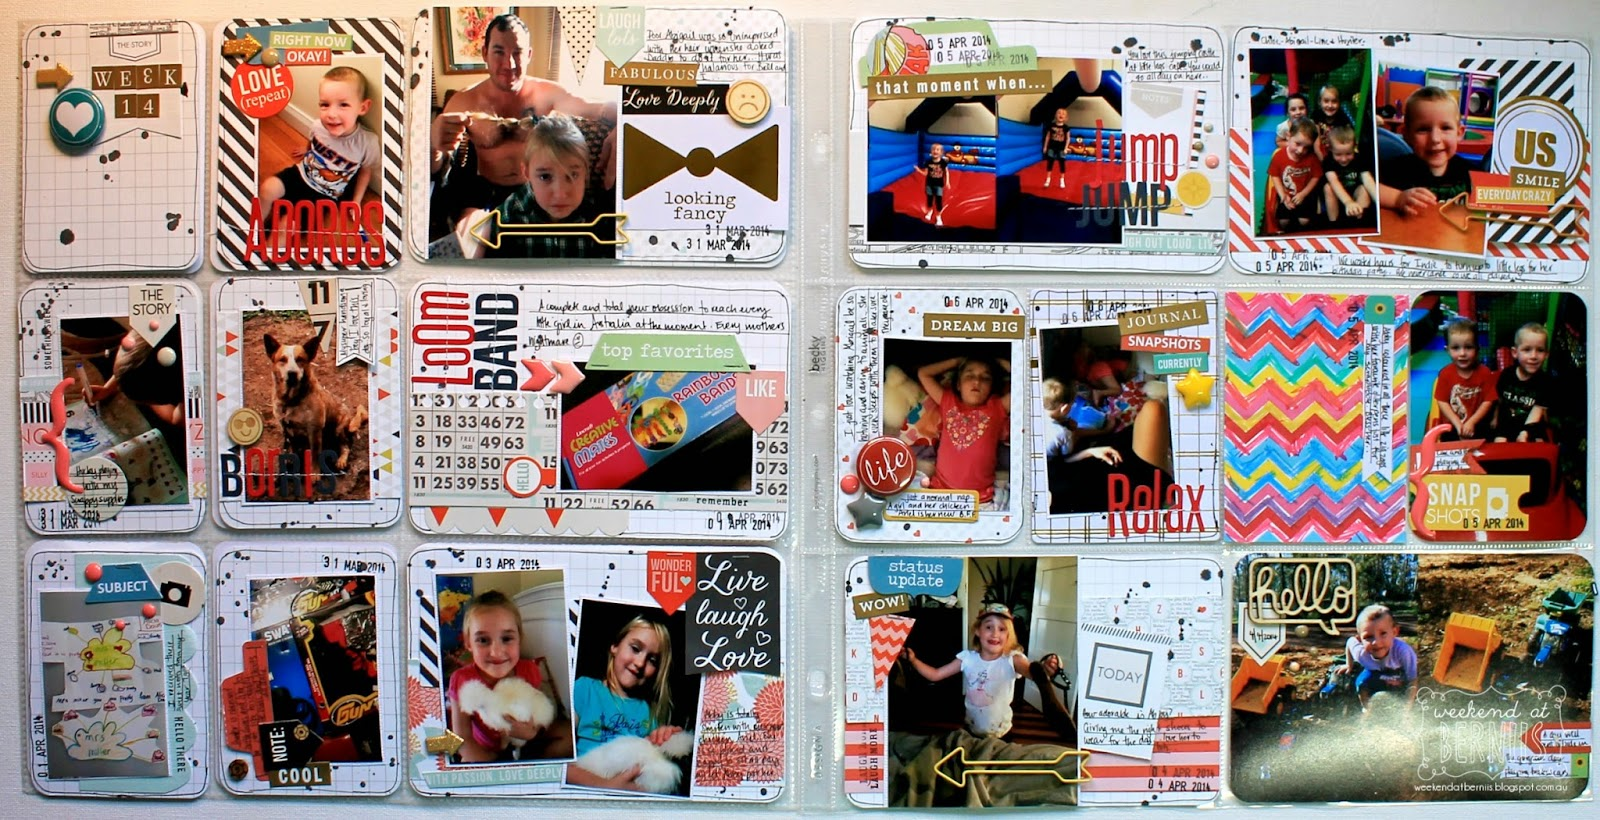 Week 14 project life spread by Bernii Miller using the Scrappy Canary July Pocket life kit.